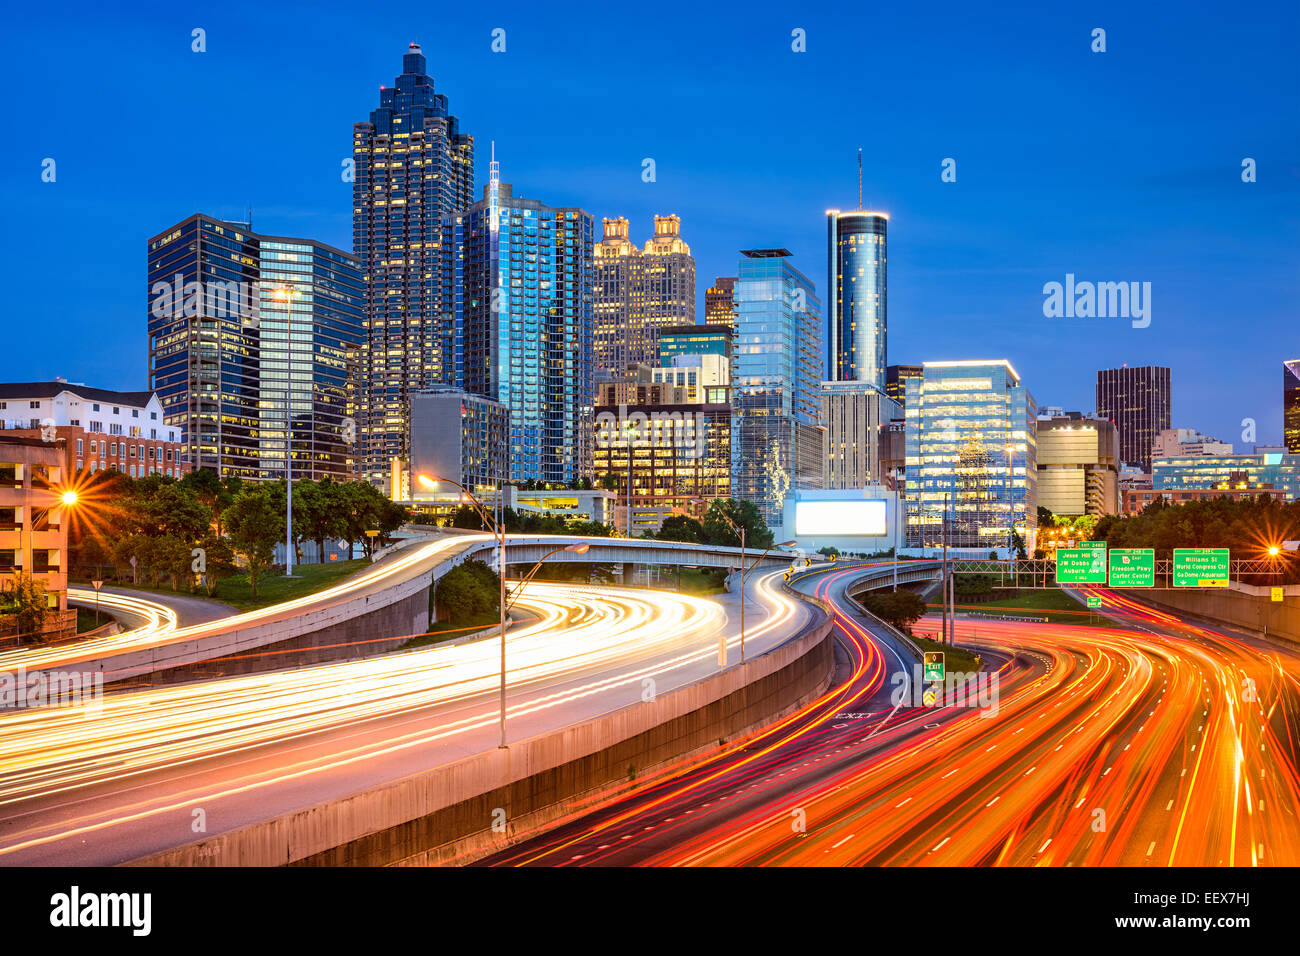 Atlanta, Georgia, USA downtown city skyline over the interstate. - Stock Image